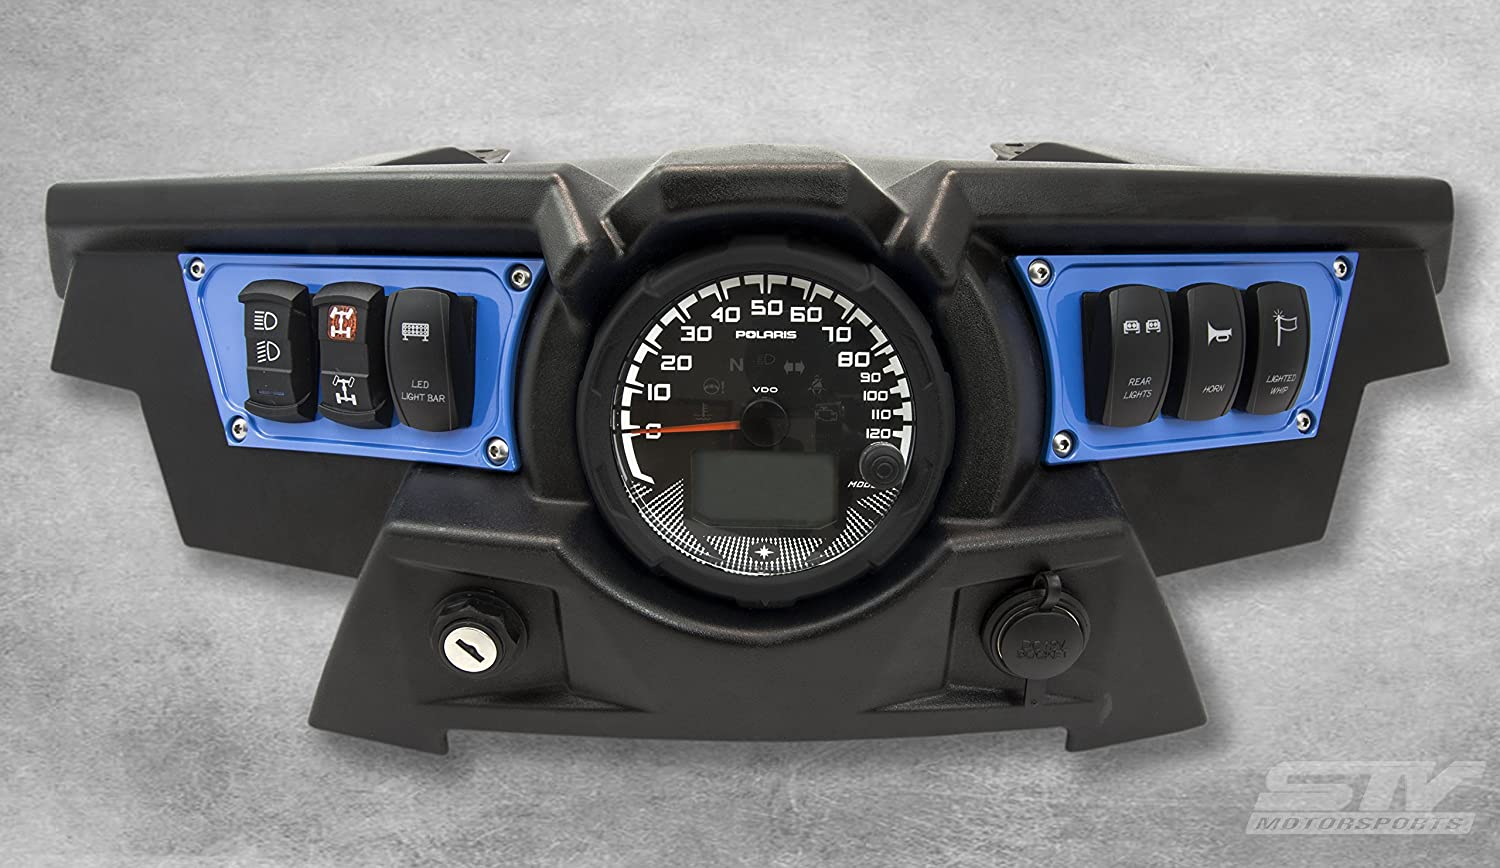 STV Motorsports Custom Aluminum Blue Dash Panel for Polaris RZR XP 1000 with 4 Laser Rocker Switches Included